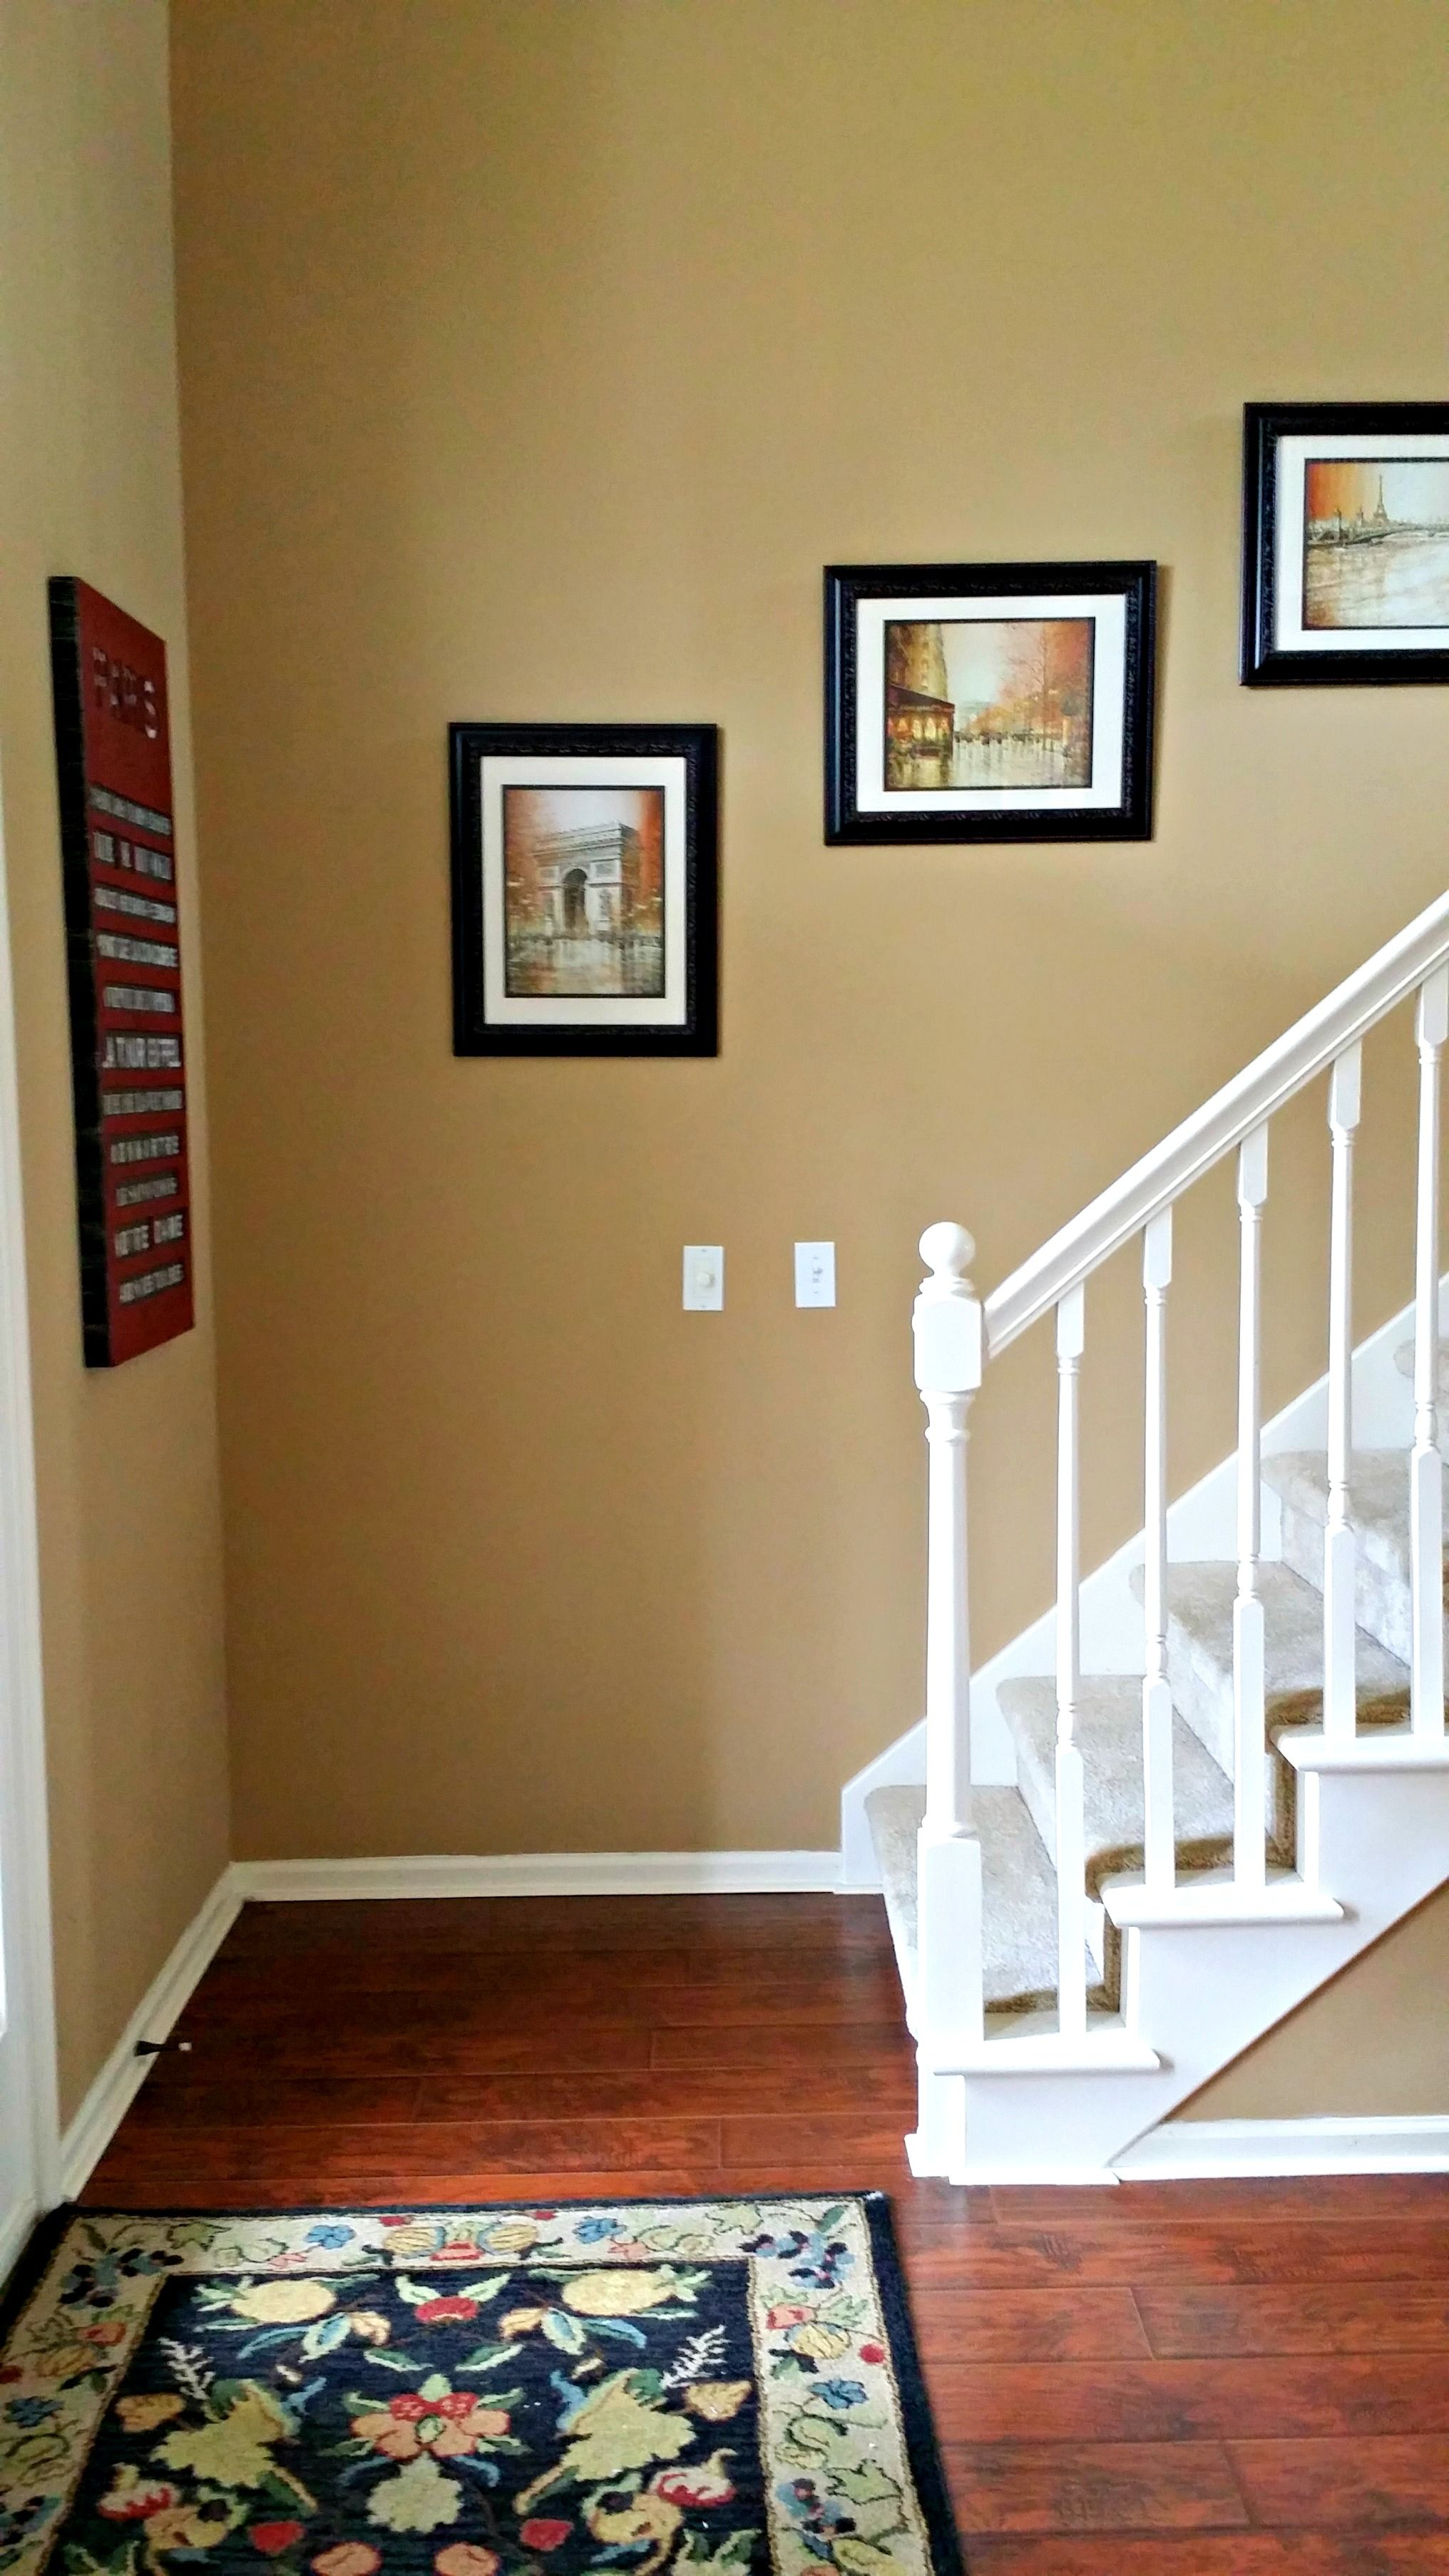 Benjamin Moore Spice Gold Walls Cherry Floors White Trim And Black Accents